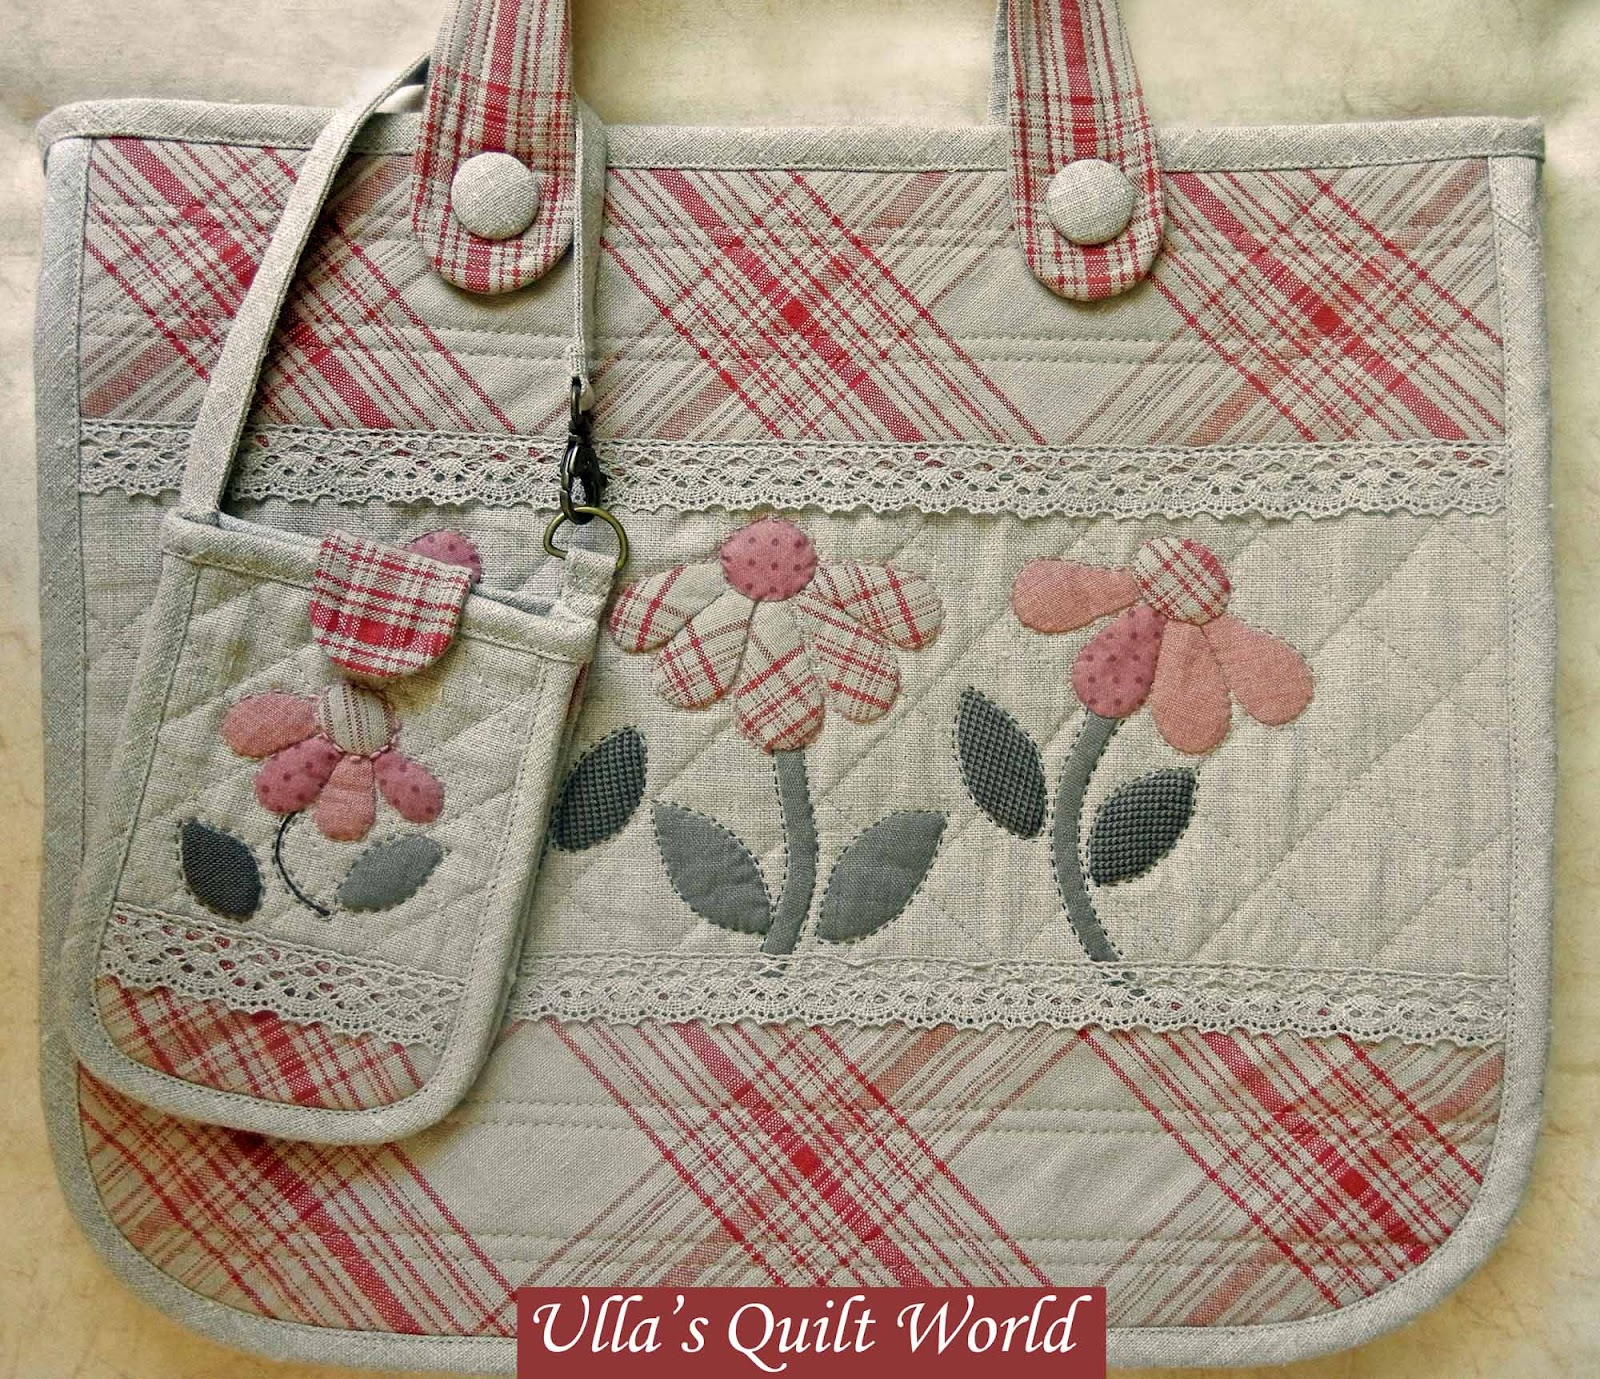 Quilting Patterns For Bags : Ulla s Quilt World: Quilt bag - Japanese patchwork